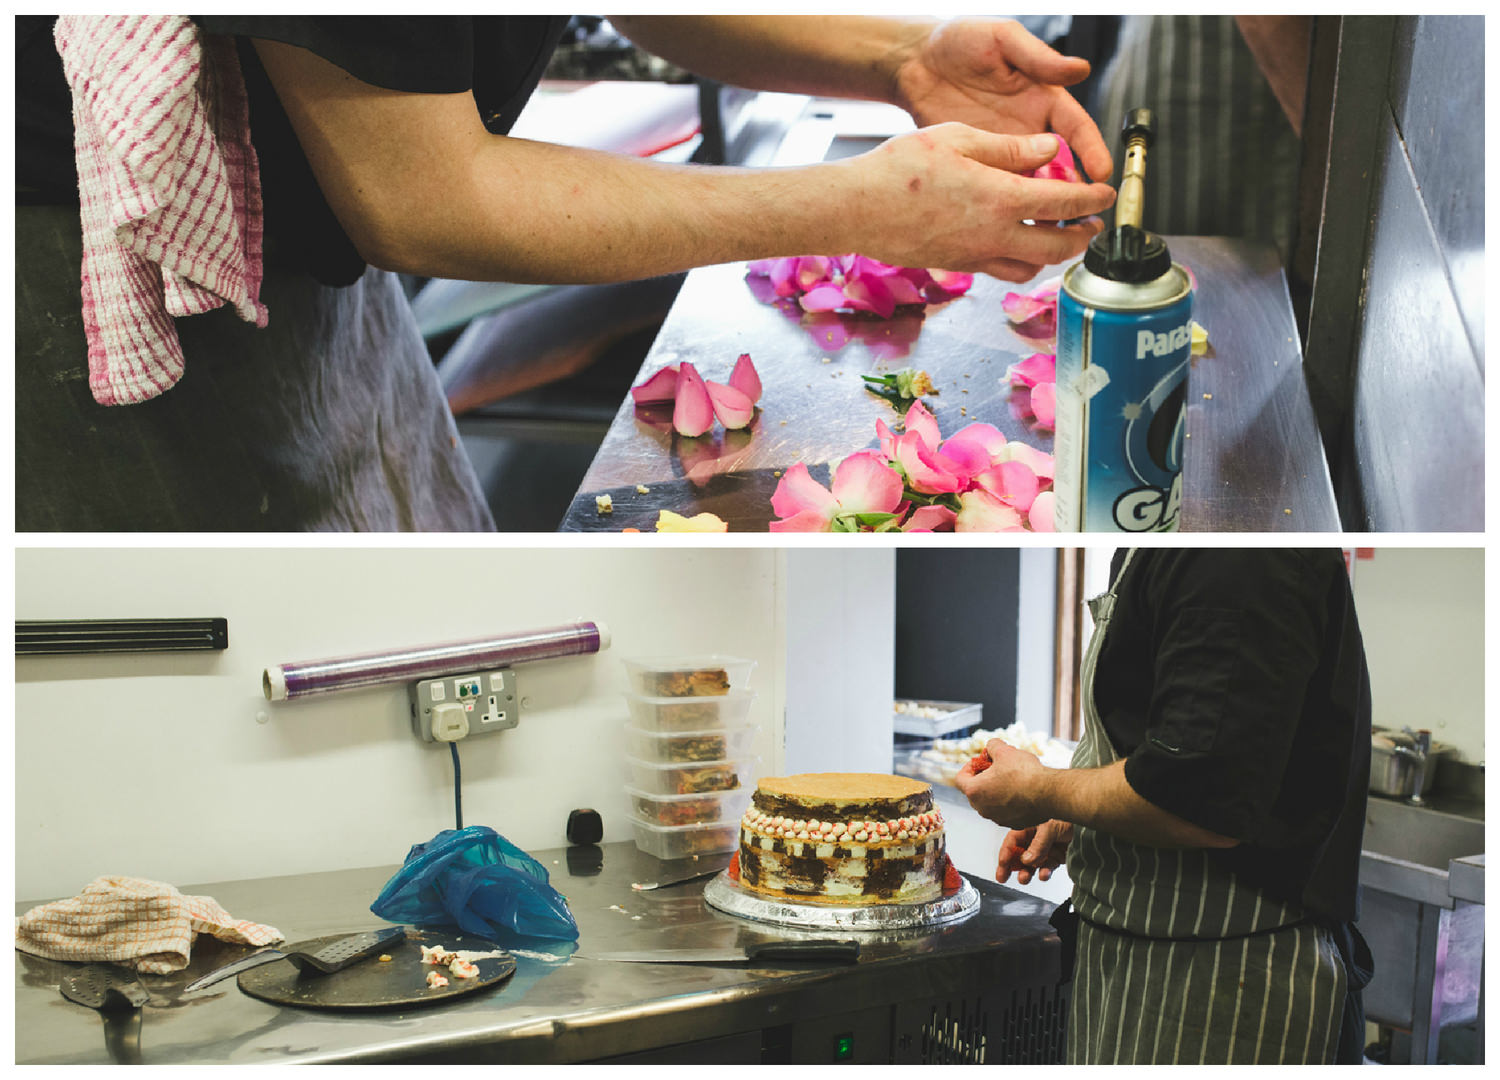 A quick glimpse of the Chef at Fontana preparing Paul & Laura's wedding cake